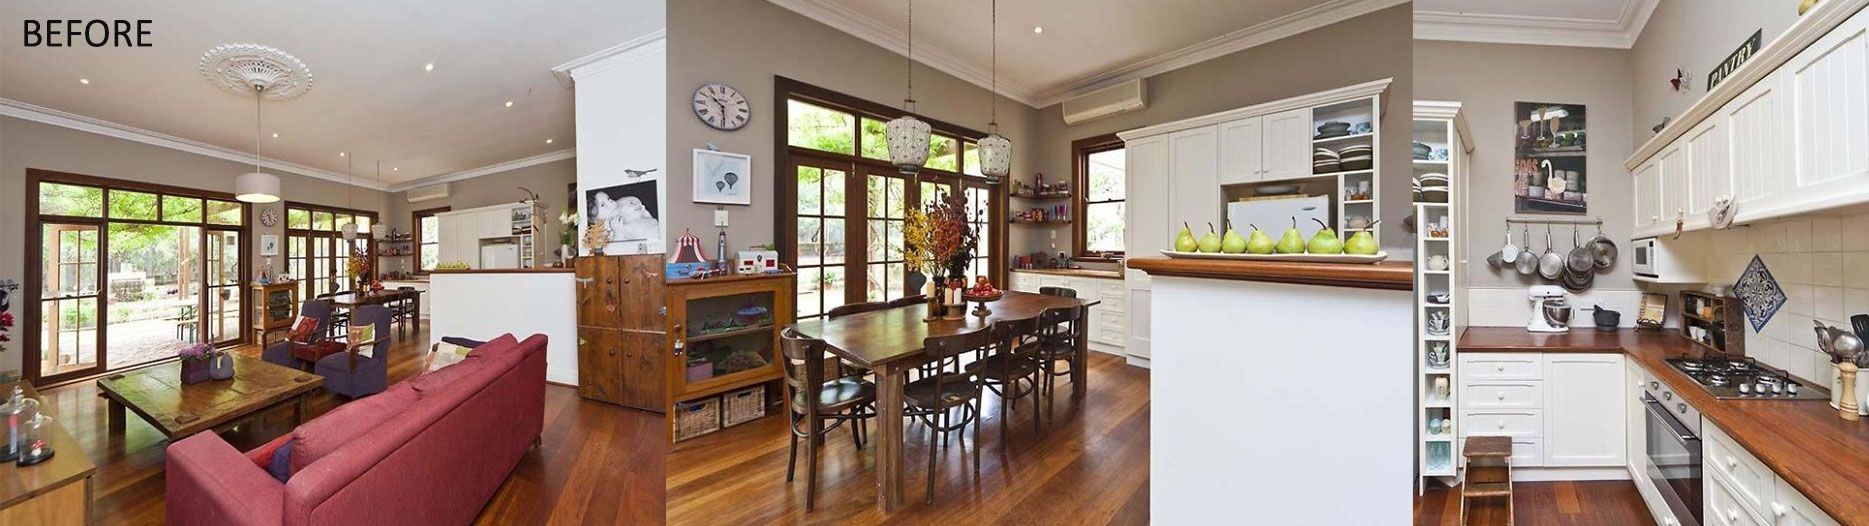 The boho refined cottage | Existing Kitchen and dining space | renovation perth Small home Renovations Perth | Studio McQueen | Melinda McQueen interior designer and architectural designer